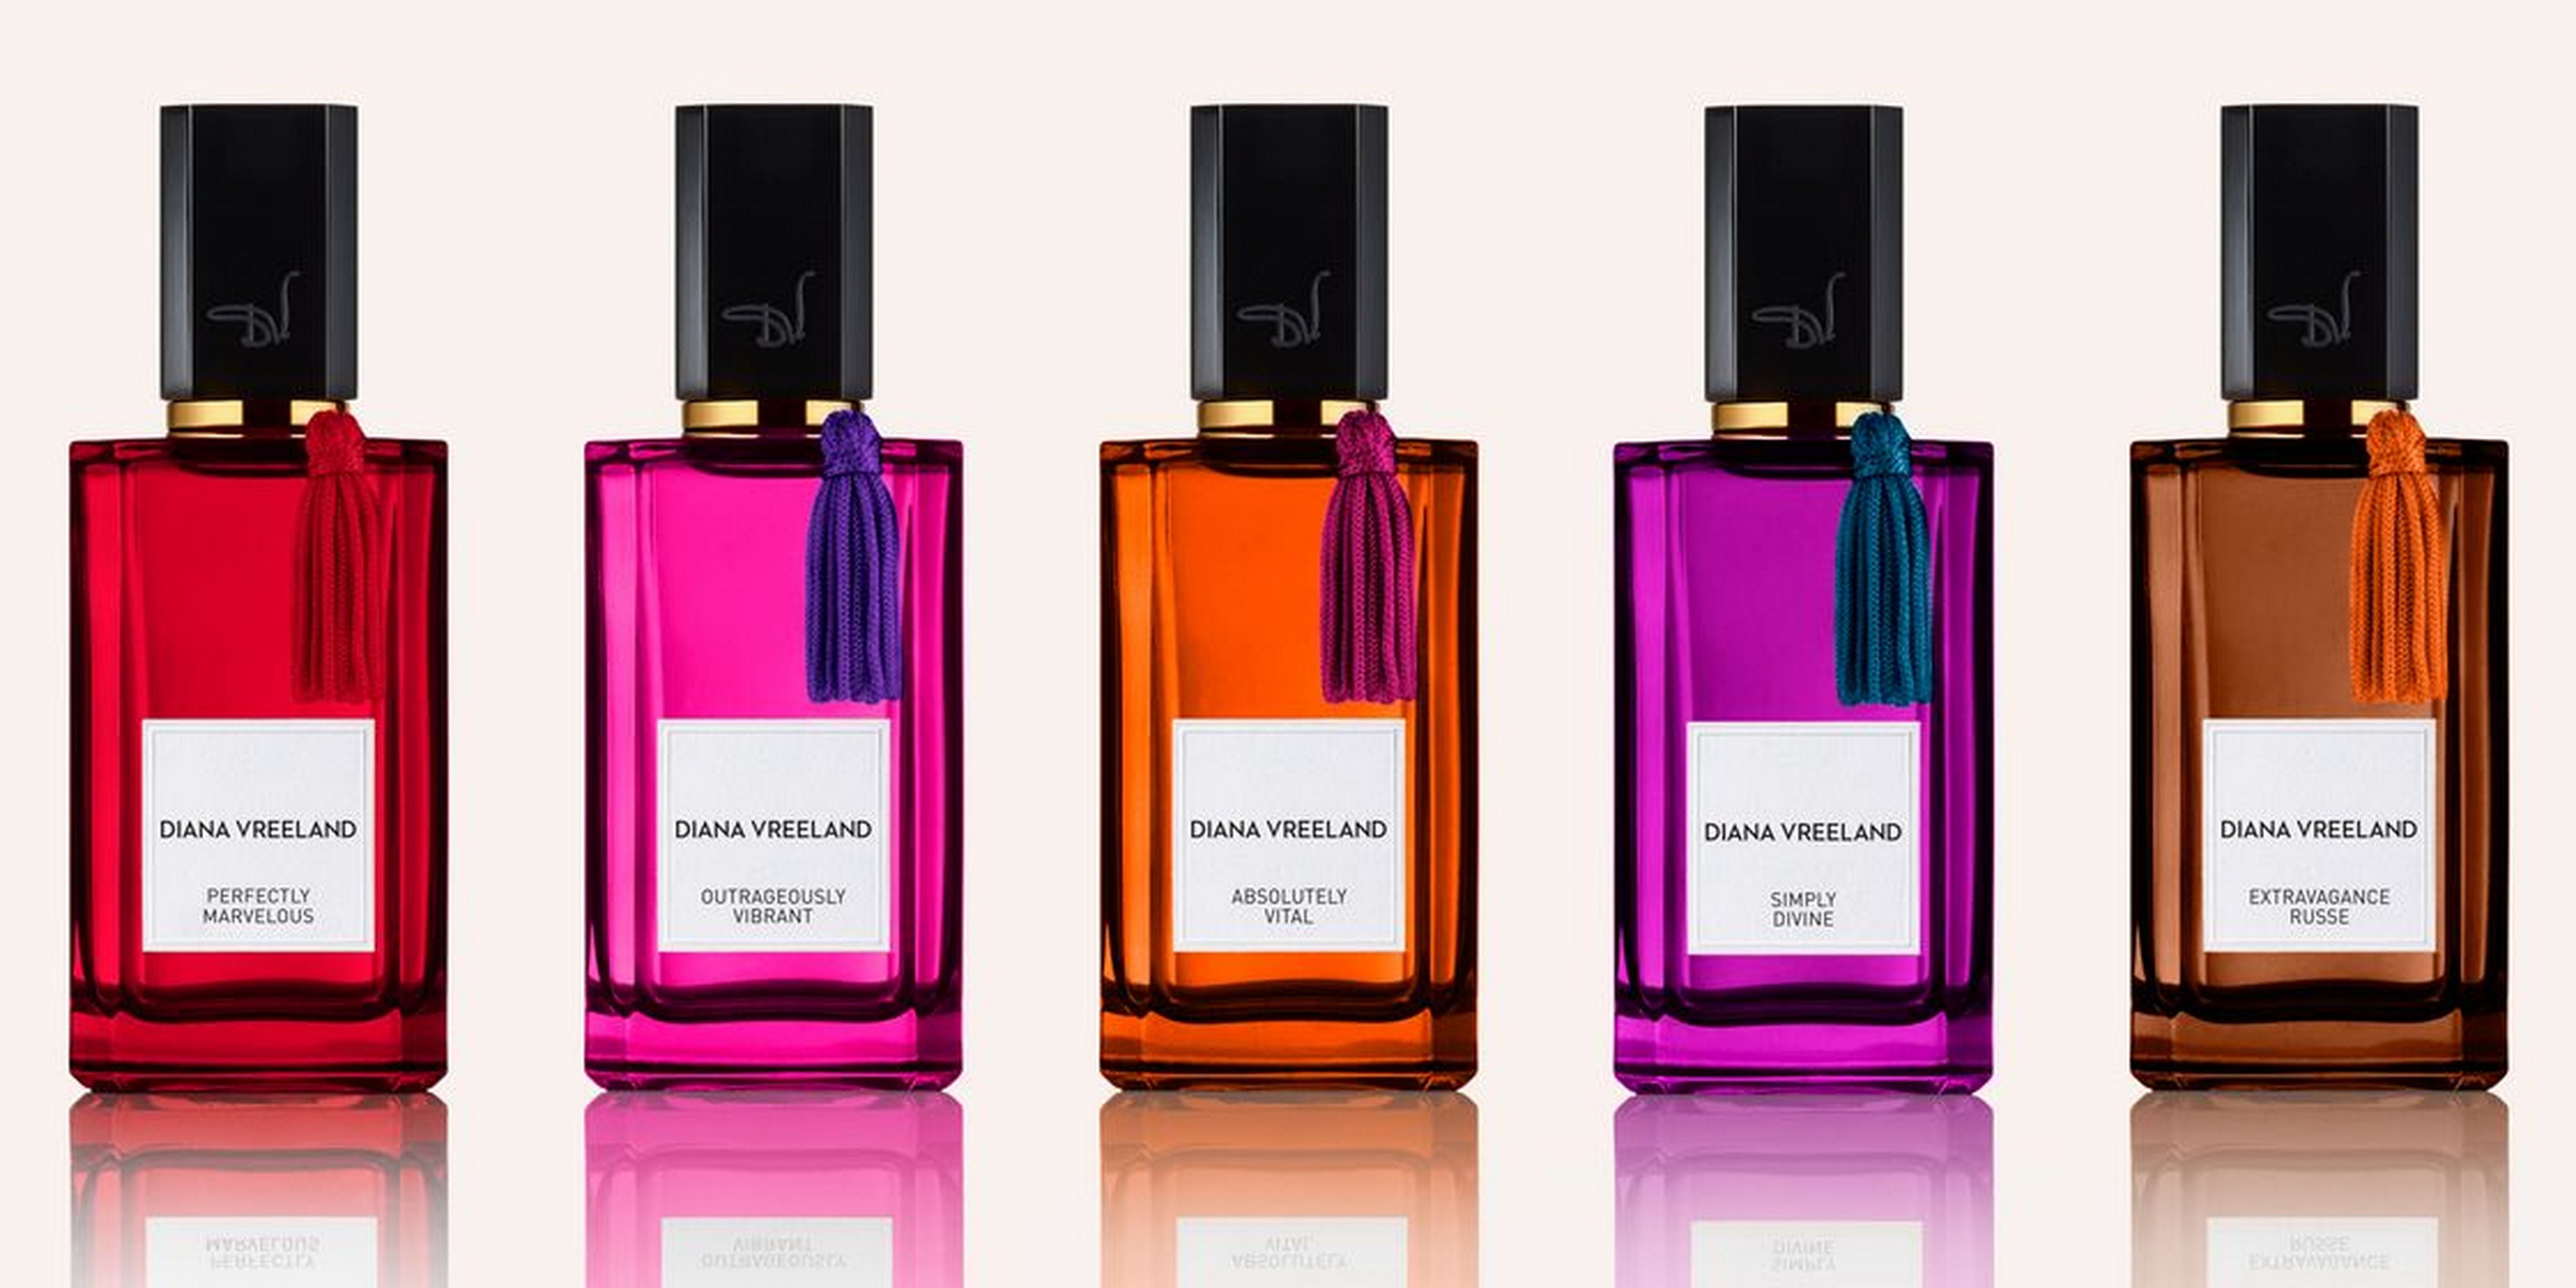 bottles of Diana Vreeland fragrance: Absolutely Vital, Extravagance Russe, Perfectly Marvelous, Simply Divine, Outrageously Vibrant